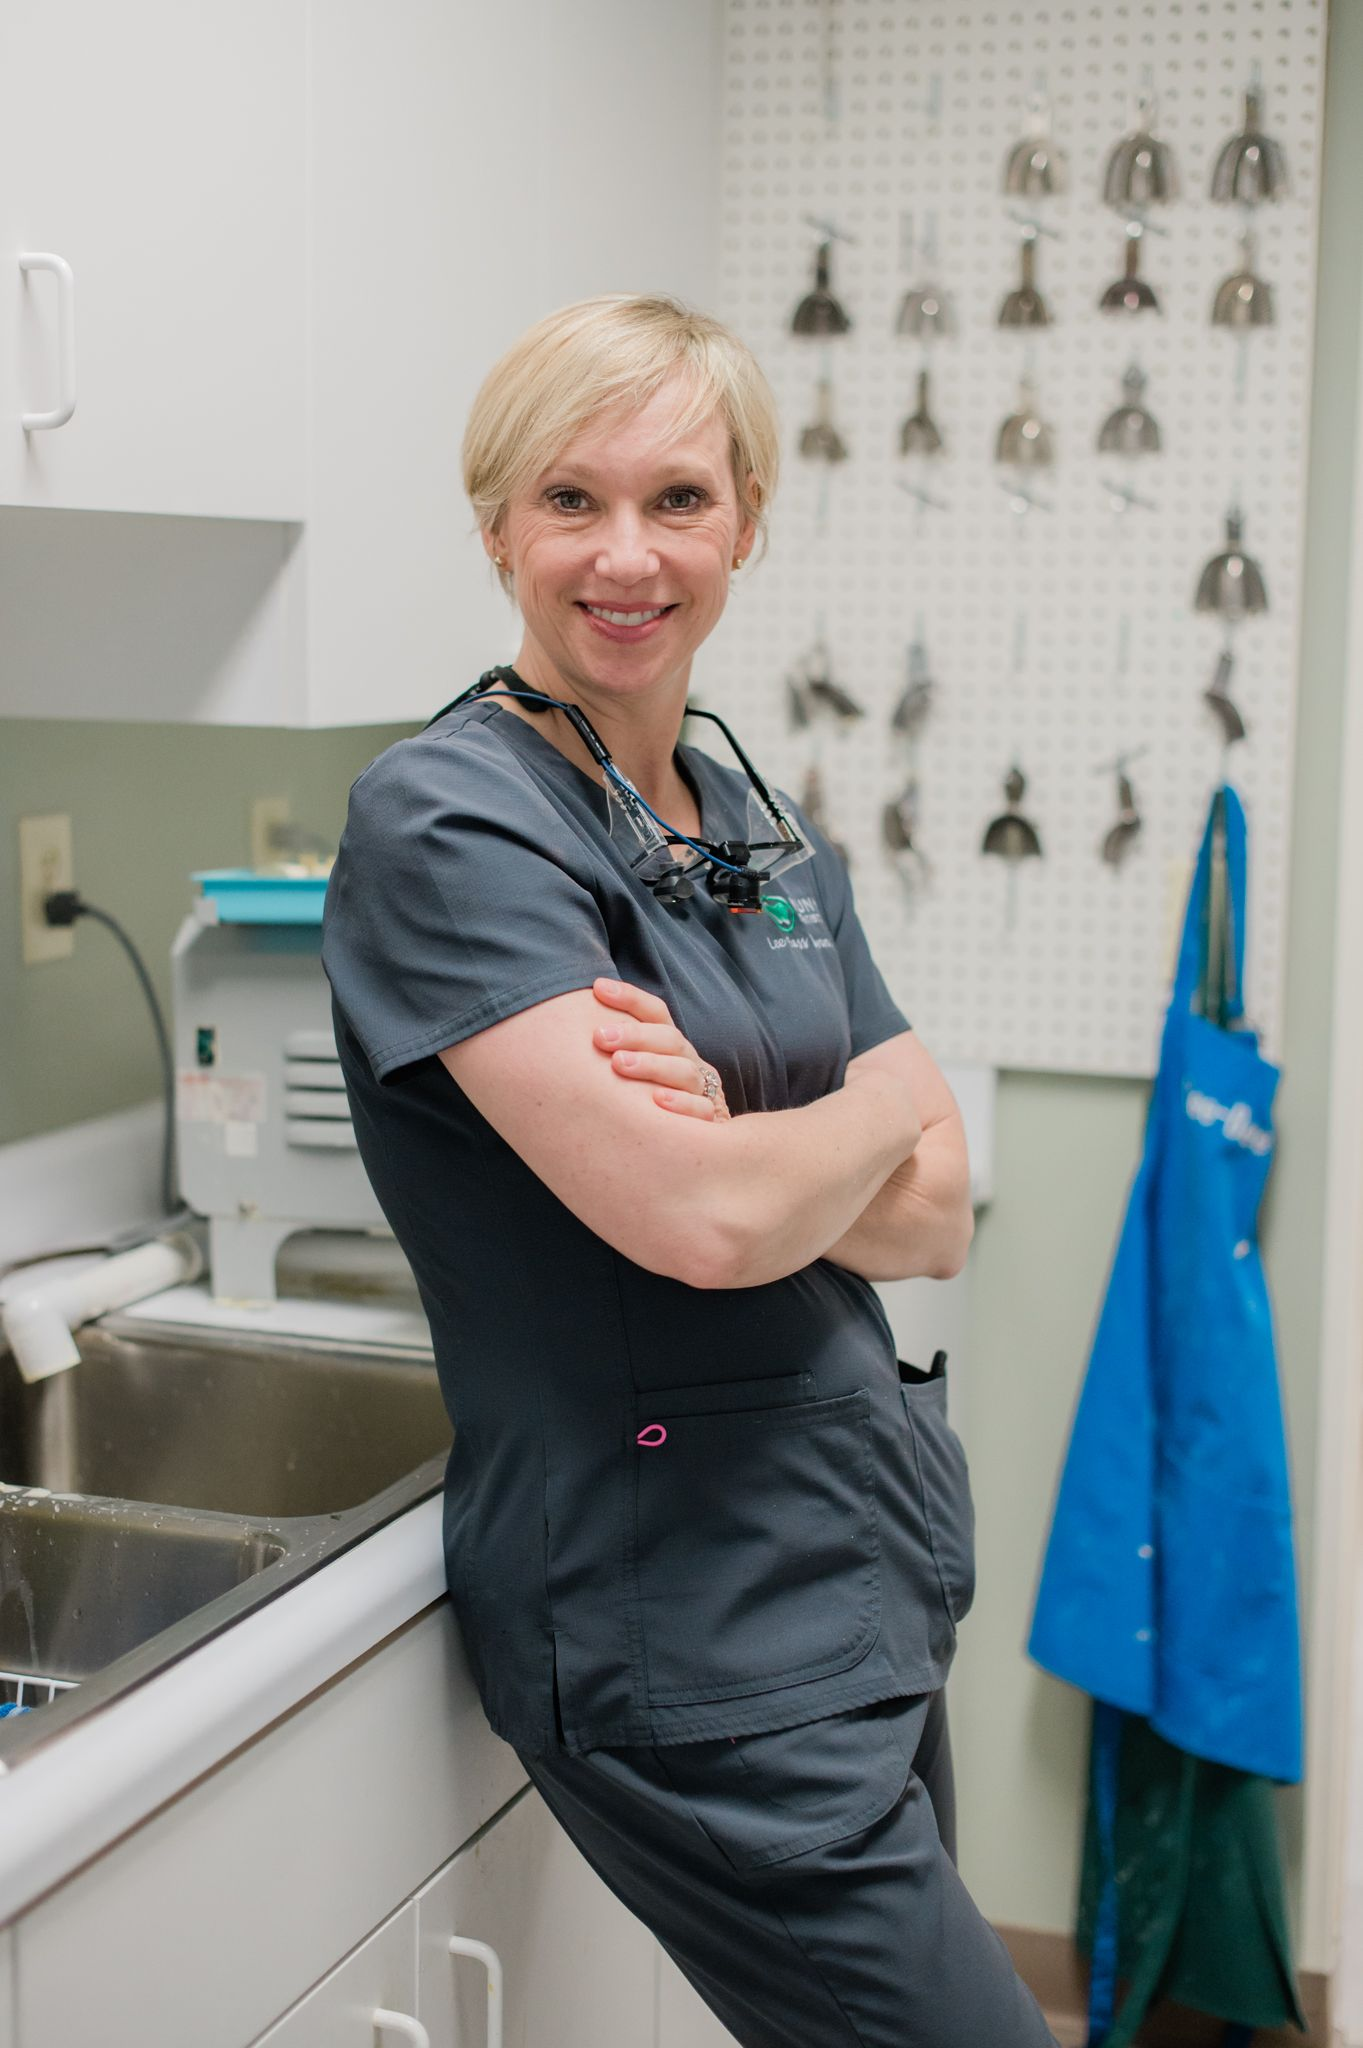 Dr. Lee Bass Nunn wears scrubs and leans against a counter in her dentist's office.